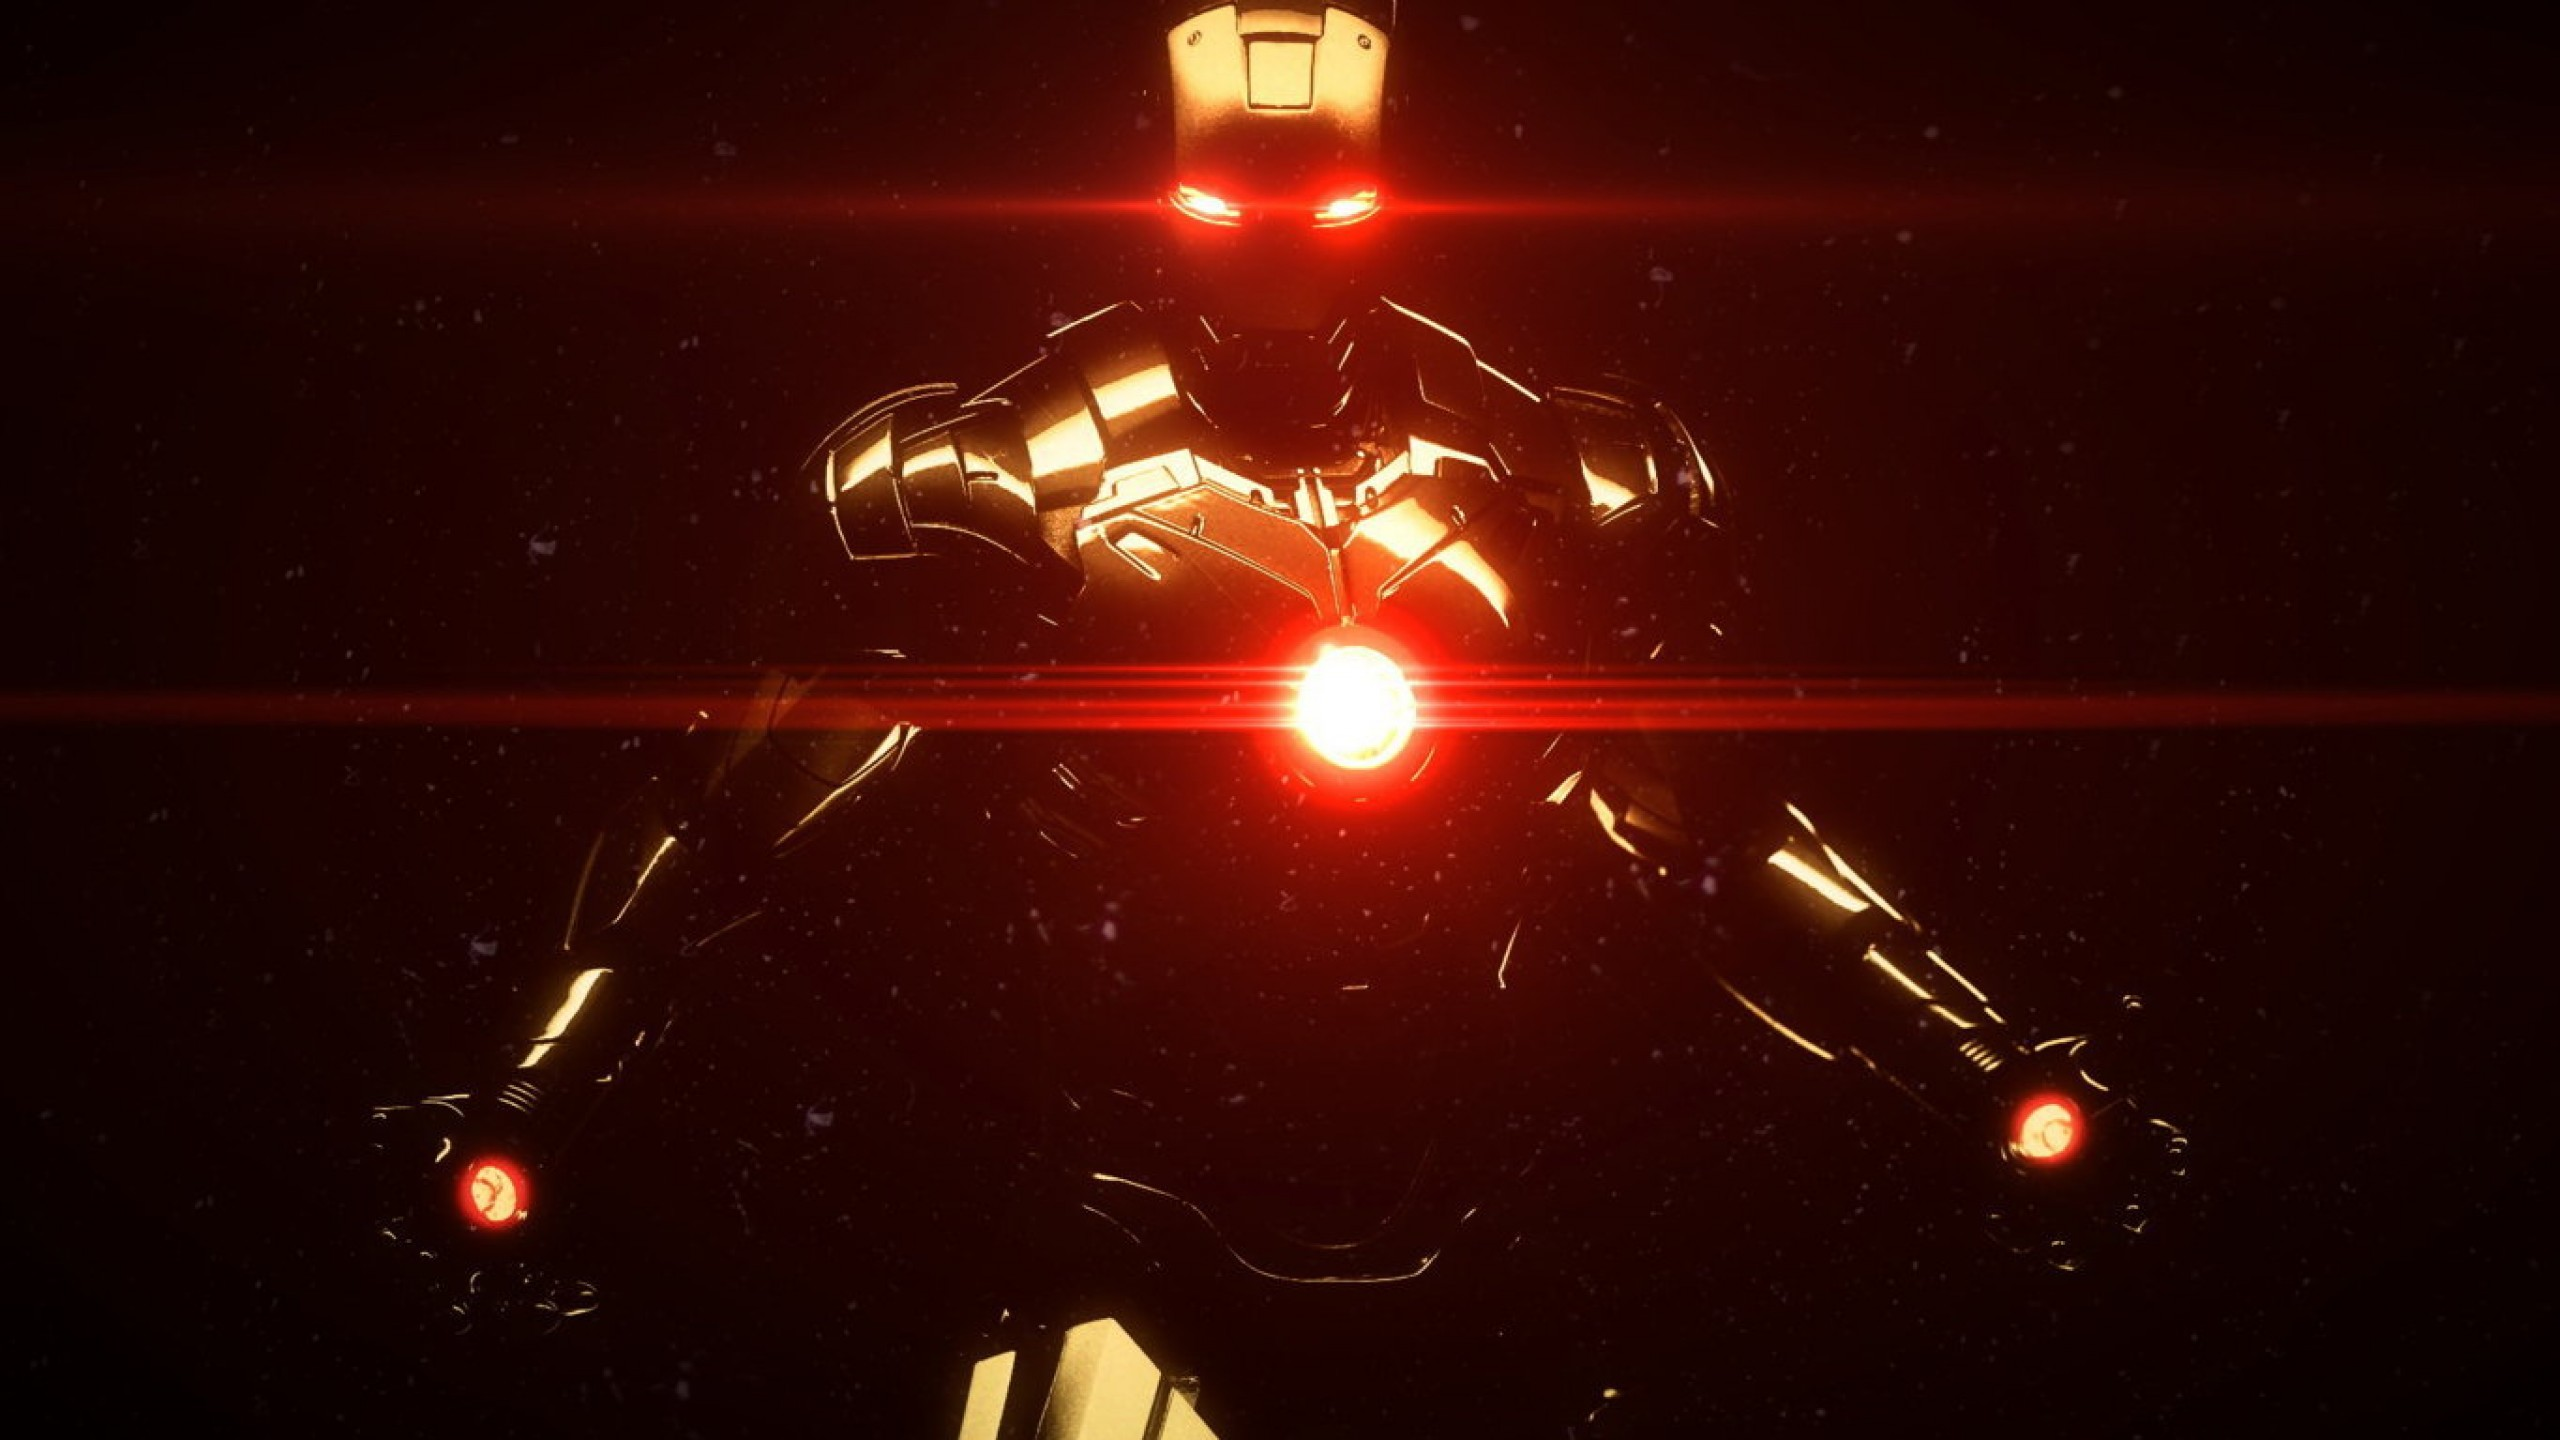 Iron Man Wallpaper Hd For Android wallpaper   1436917 2560x1440